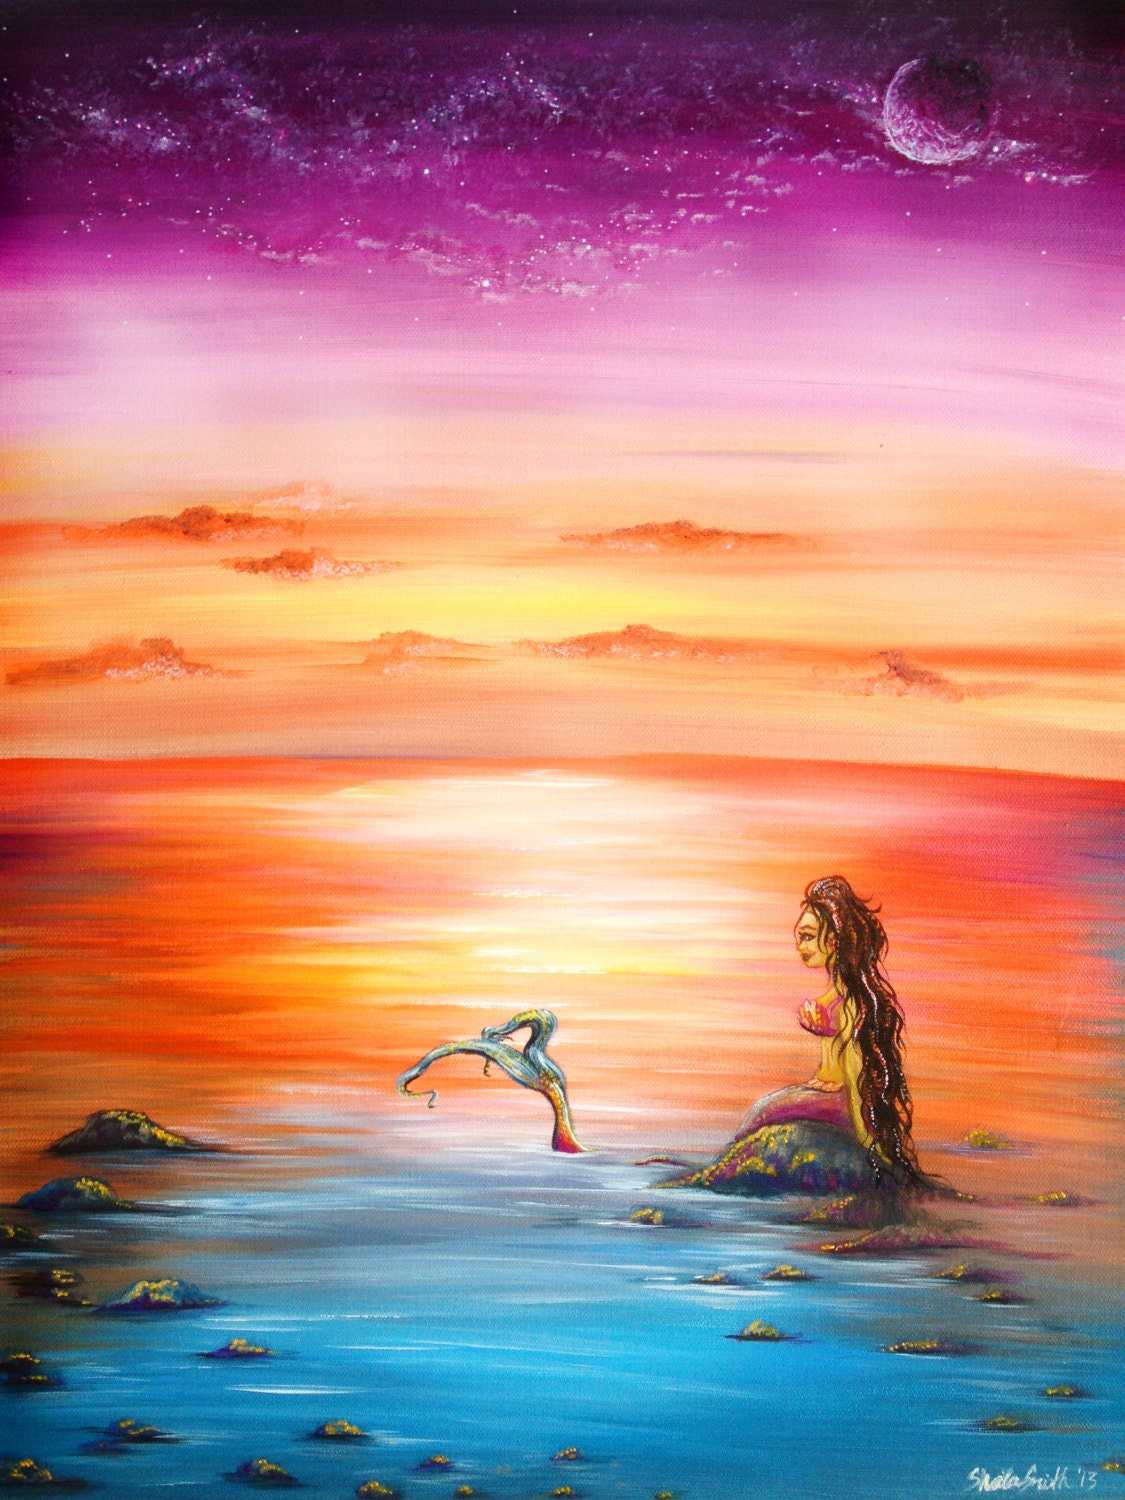 Colorful Fantasy Mermaid Original Painting Sunset Beach Scene